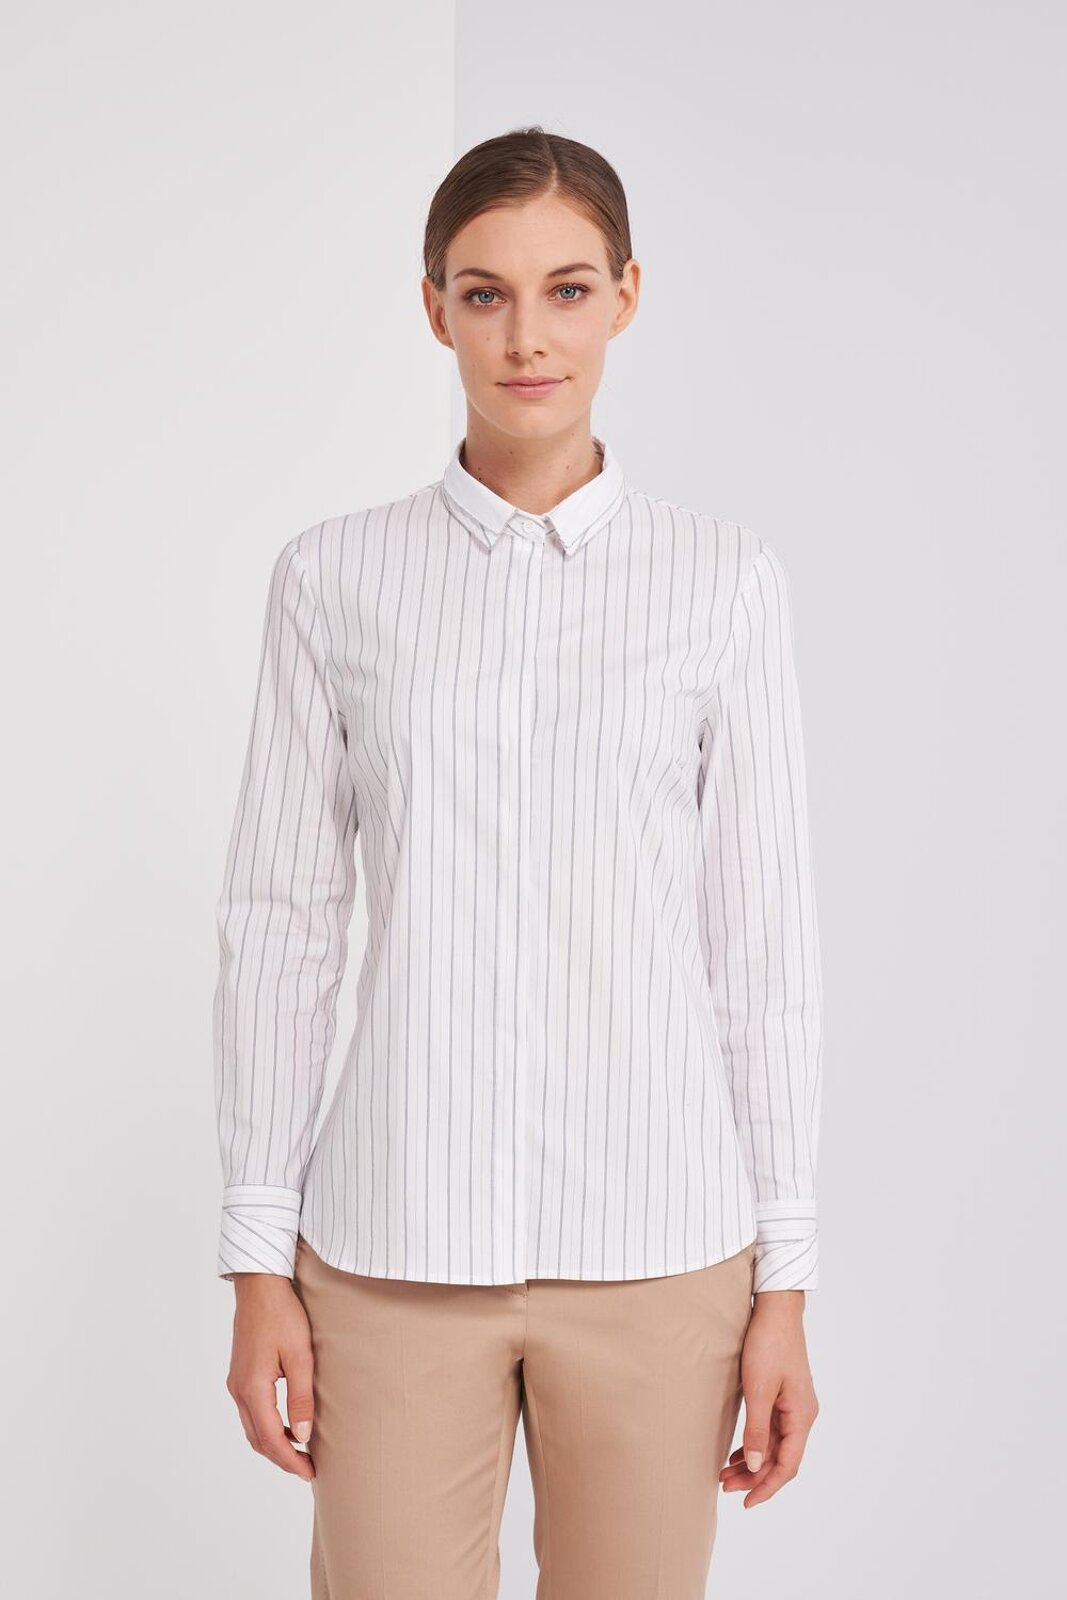 Long Sleeve Shirt In Slightly Stretch Striped Cotton. Front Button Closure, Regular Fit. - Peserico